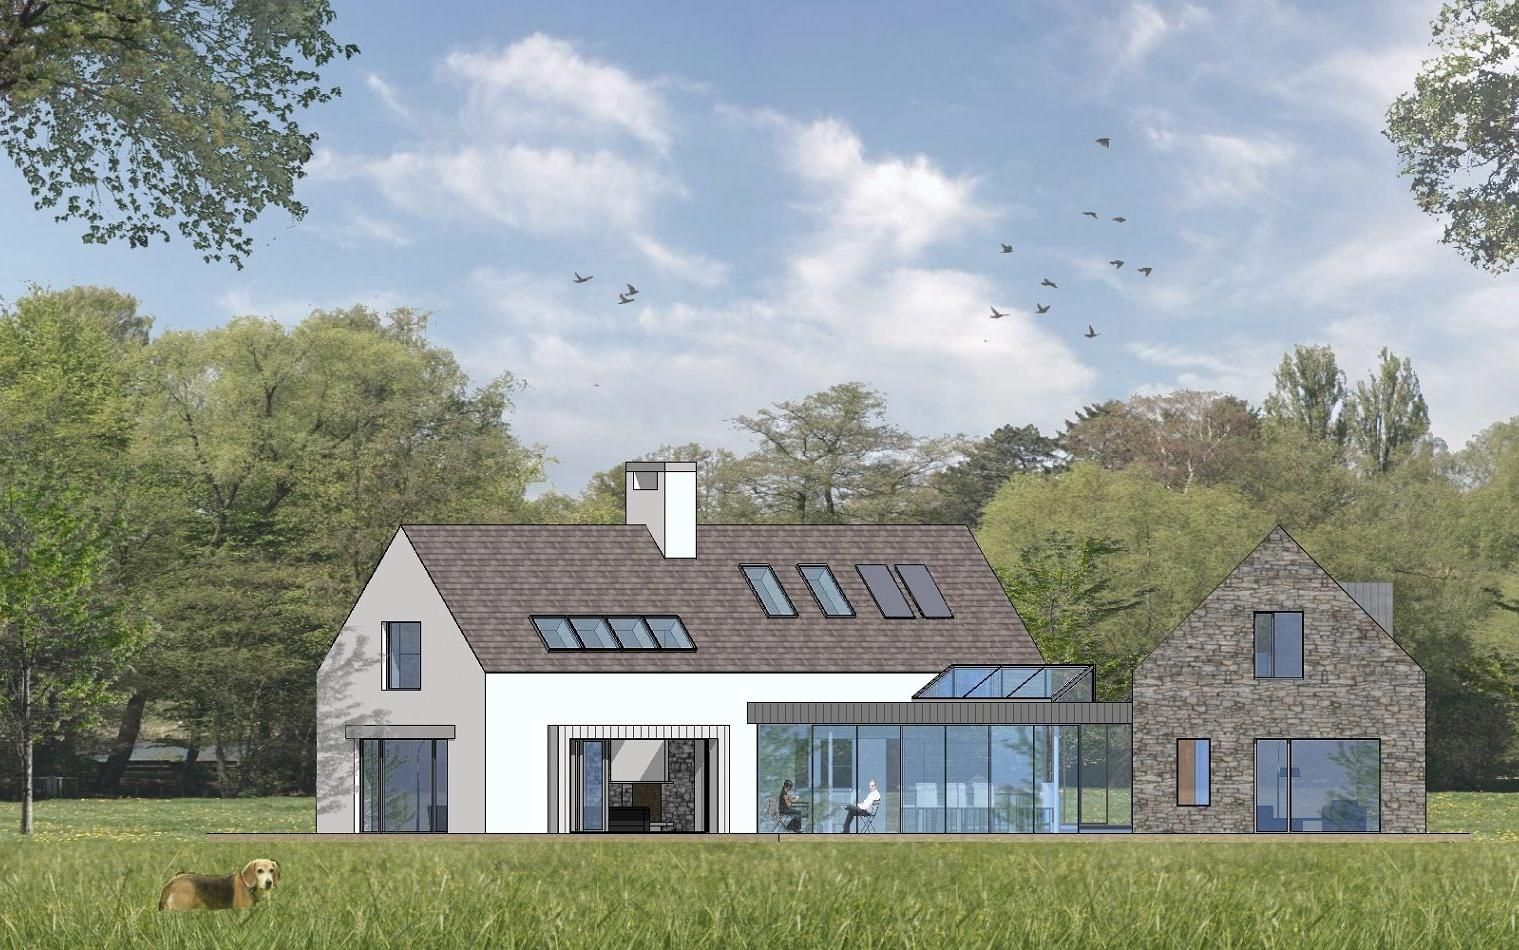 Contemporary 4 bedroom irish countryside dwelling house designs ireland bungalow exterior 4 bedroom